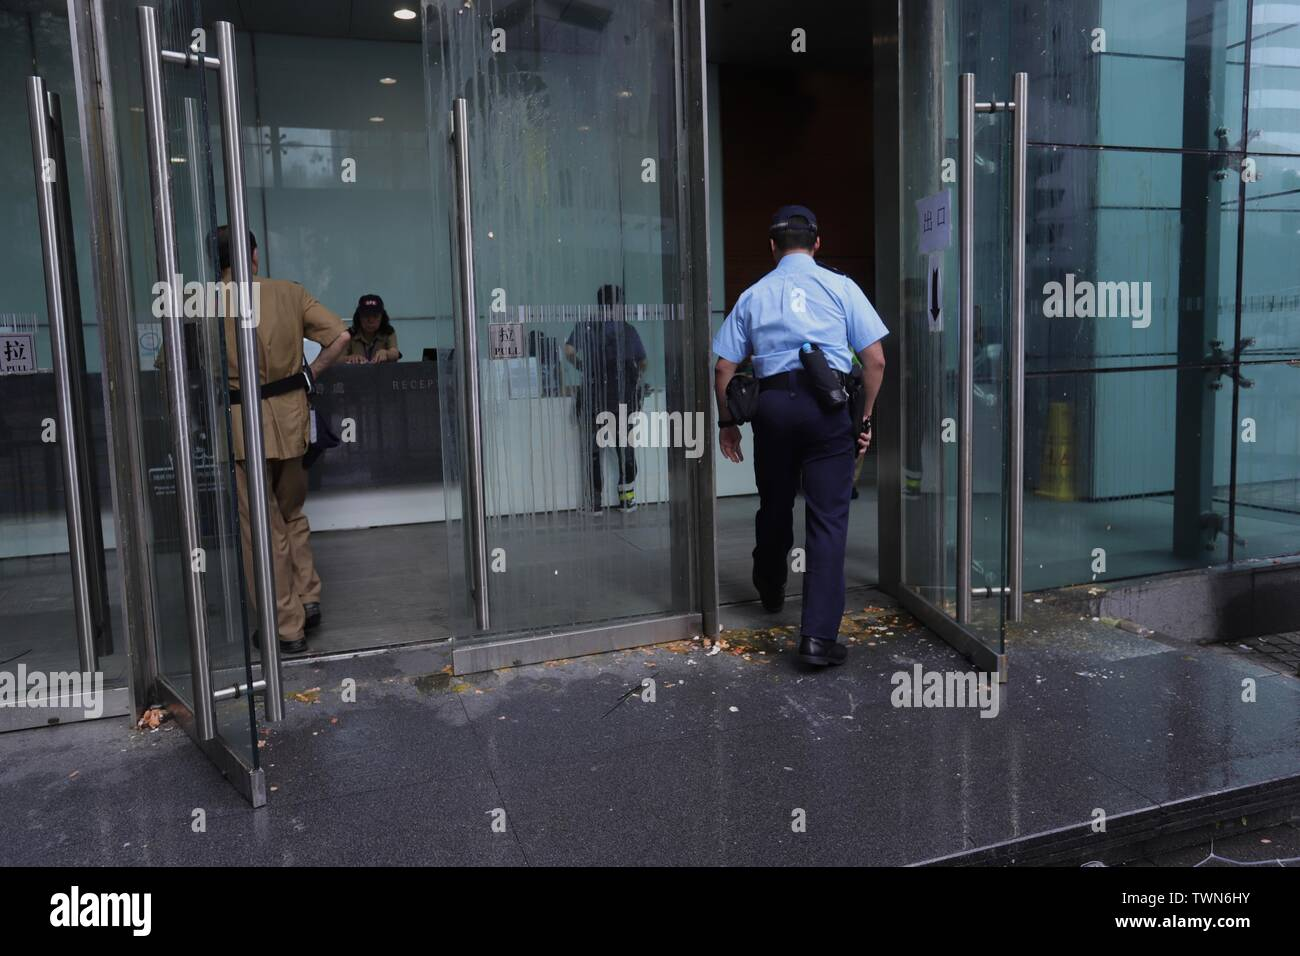 Hong Kong. 22nd June, 2019. Policeman walk over broken egg shells and slime as he enter Hong Kong Police Headquarters in the early morning after thousand of demonstrators surrounded Police Headquater last night condemning police brutality, demanding Police Chief Lo Wai-chung to offer formal apologies to the public. So far Lo have not responded to public outcry.June-22, 2019 Hong Kong.ZUMA/Liau Chung-ren Credit: Liau Chung-ren/ZUMA Wire/Alamy Live News - Stock Image